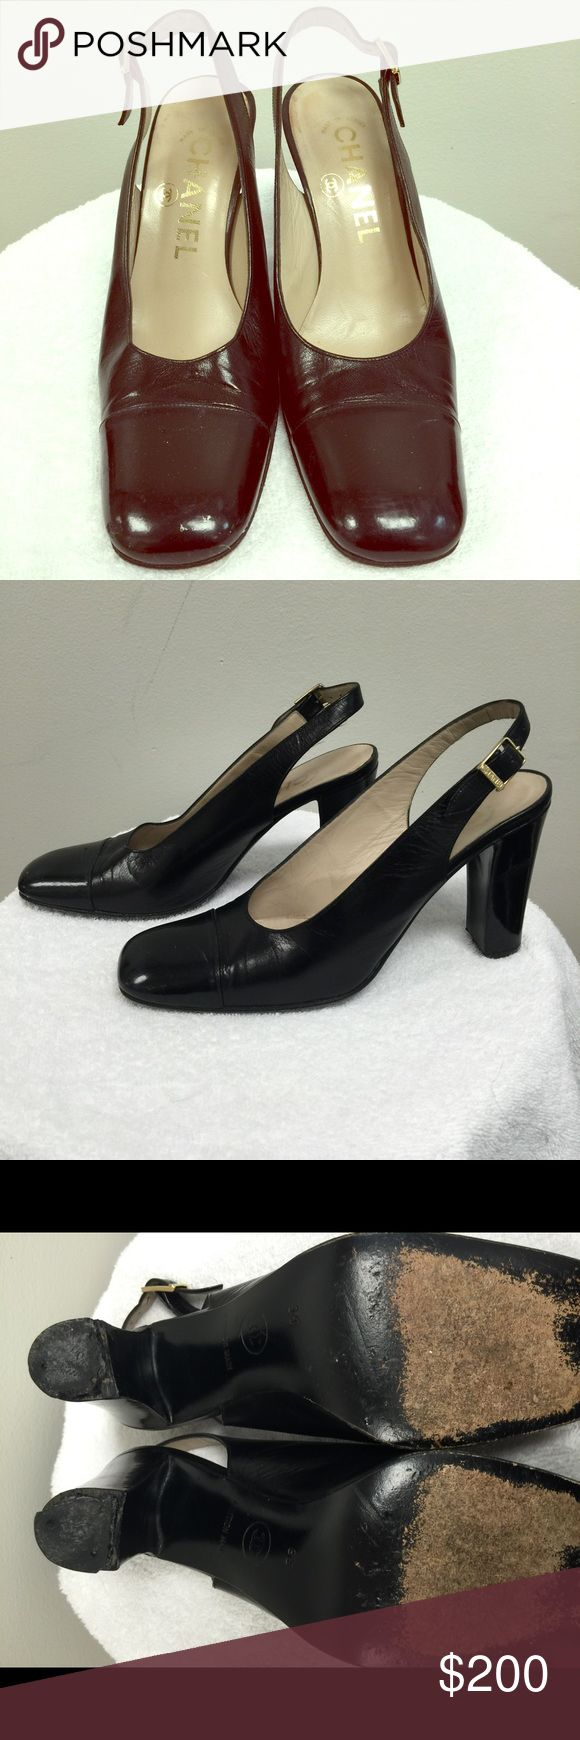 100% authentic Chanel Slingback heels These are authentic and they are in good shape as well. Pictures show that the heel is a little beat up but a cobbler can easily replace that. Price reflects condition CHANEL Shoes Heels